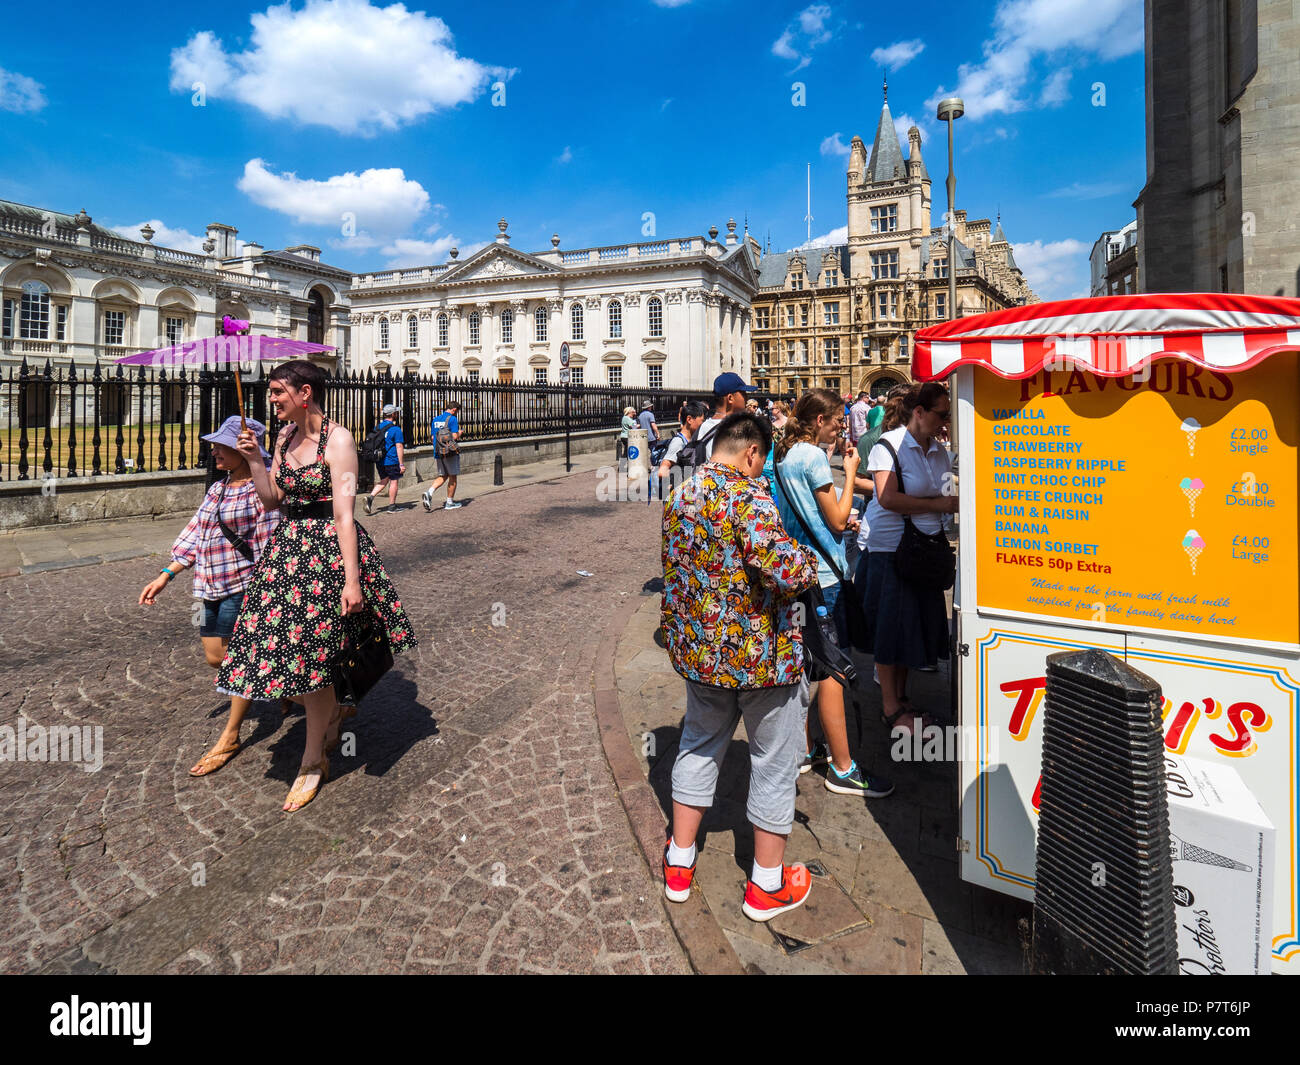 Tourists walk and buy Ice Cream on a sunny day in Central Cambridge,  between Kings Parade and Trinity Street, University buildings in the background - Stock Image